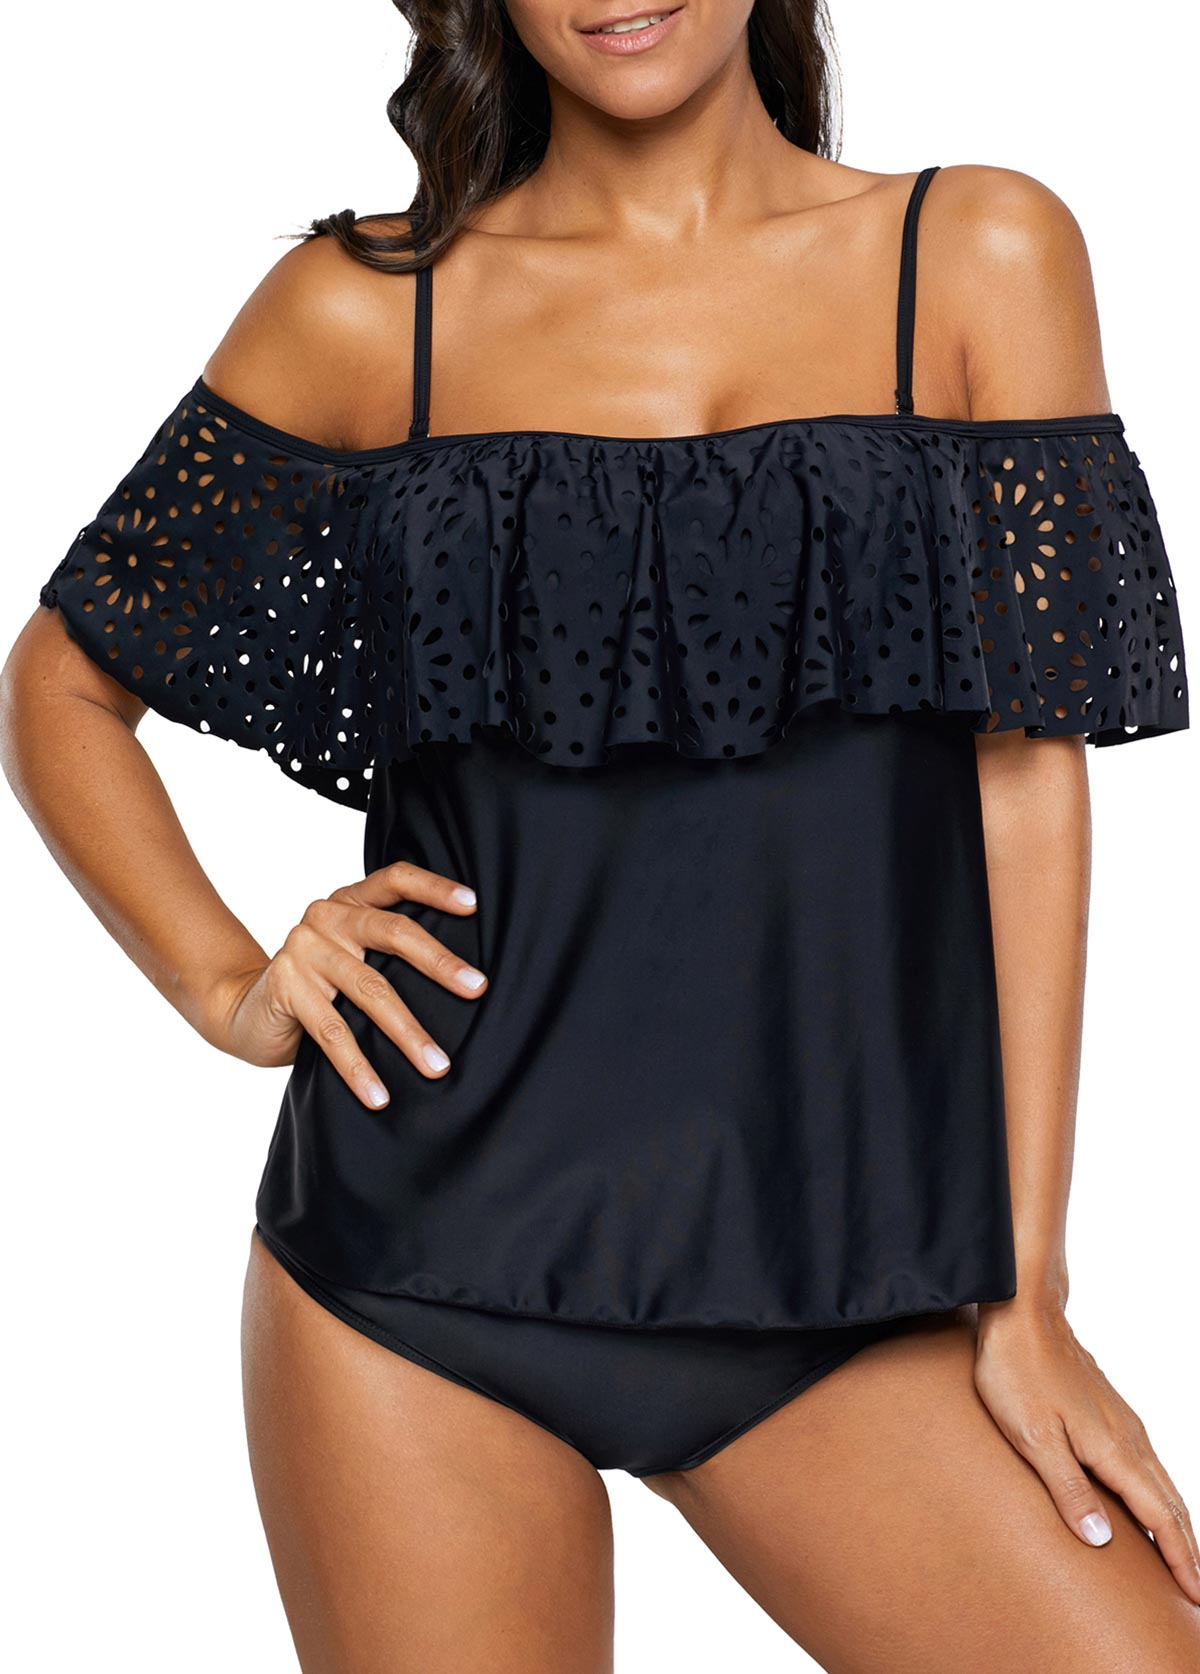 Patchwork Black Tankini Top and Panty